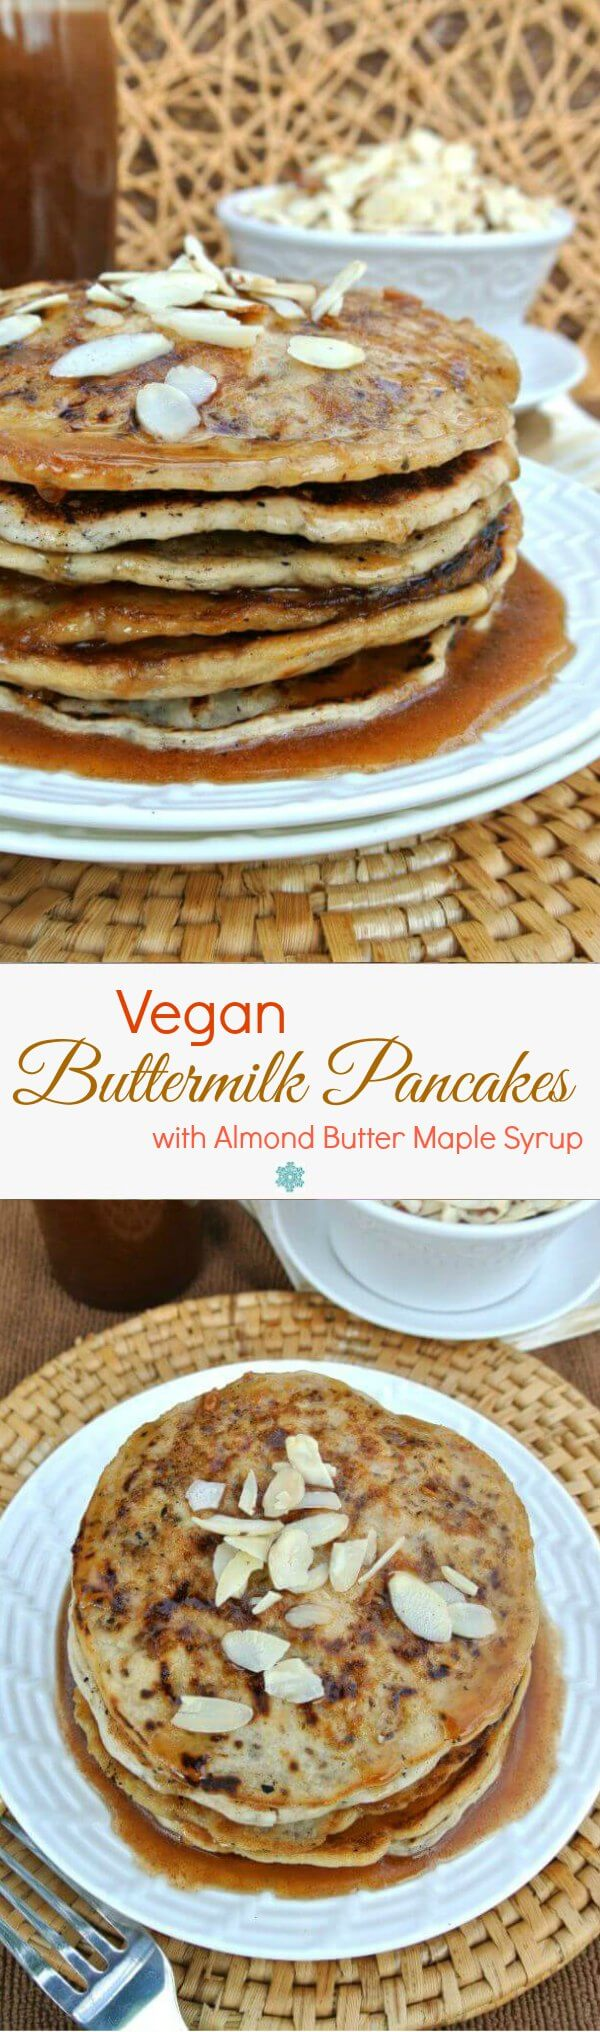 Vegan Buttermilk Pancakes with Almond Butter Maple Syrup are to-die-for and simple to make. Holiday Brunch Plan included!  Have as a special treat on the weekends or serve at your holiday brunch.